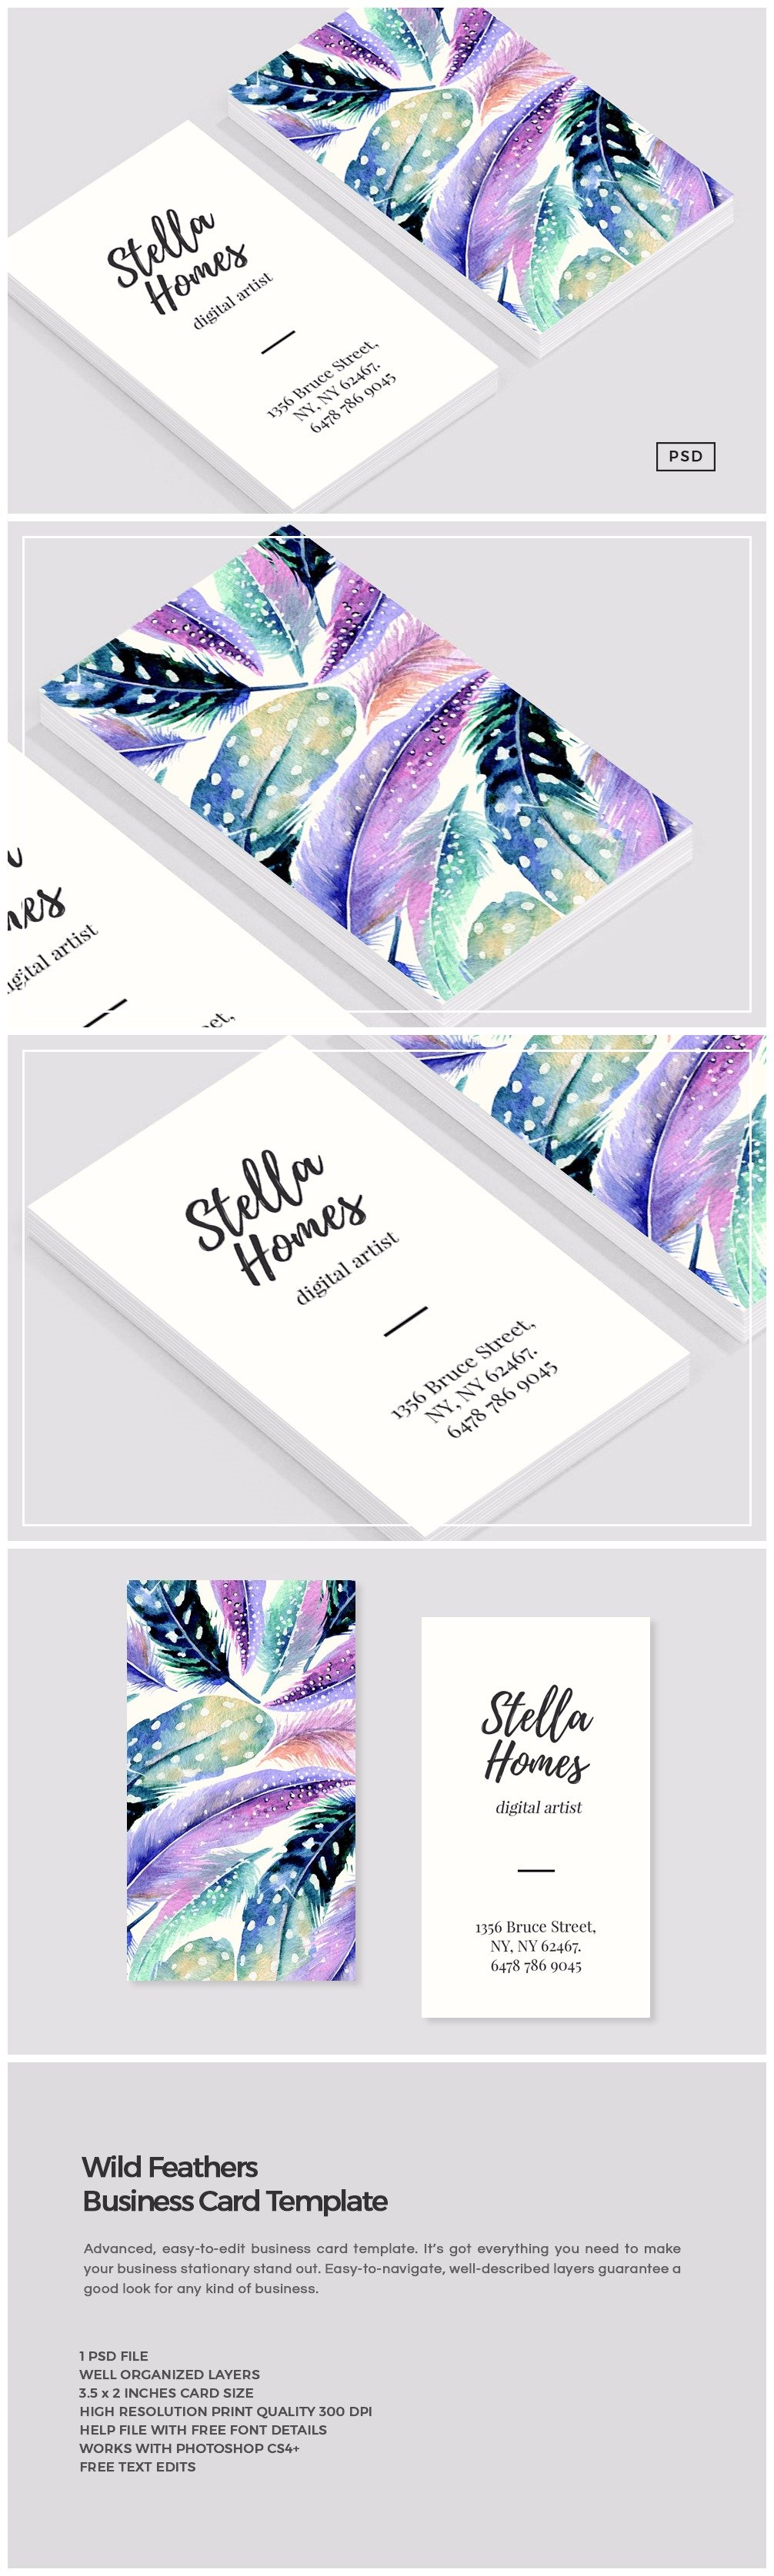 Wild feathers business card template business card templates wild feathers business card template business card templates creative market wajeb Image collections